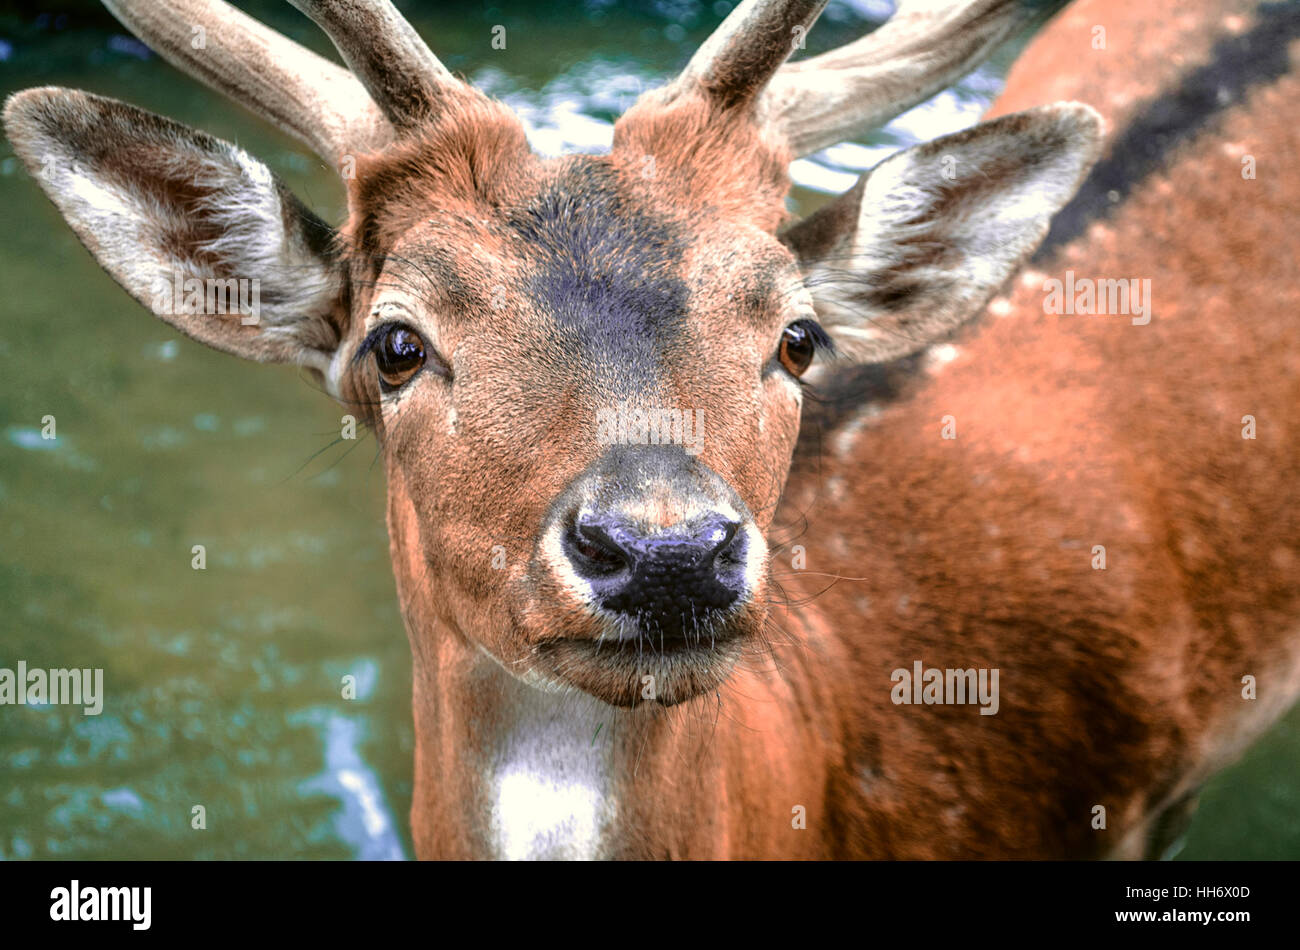 Spotted redheaded deer in water - Stock Image